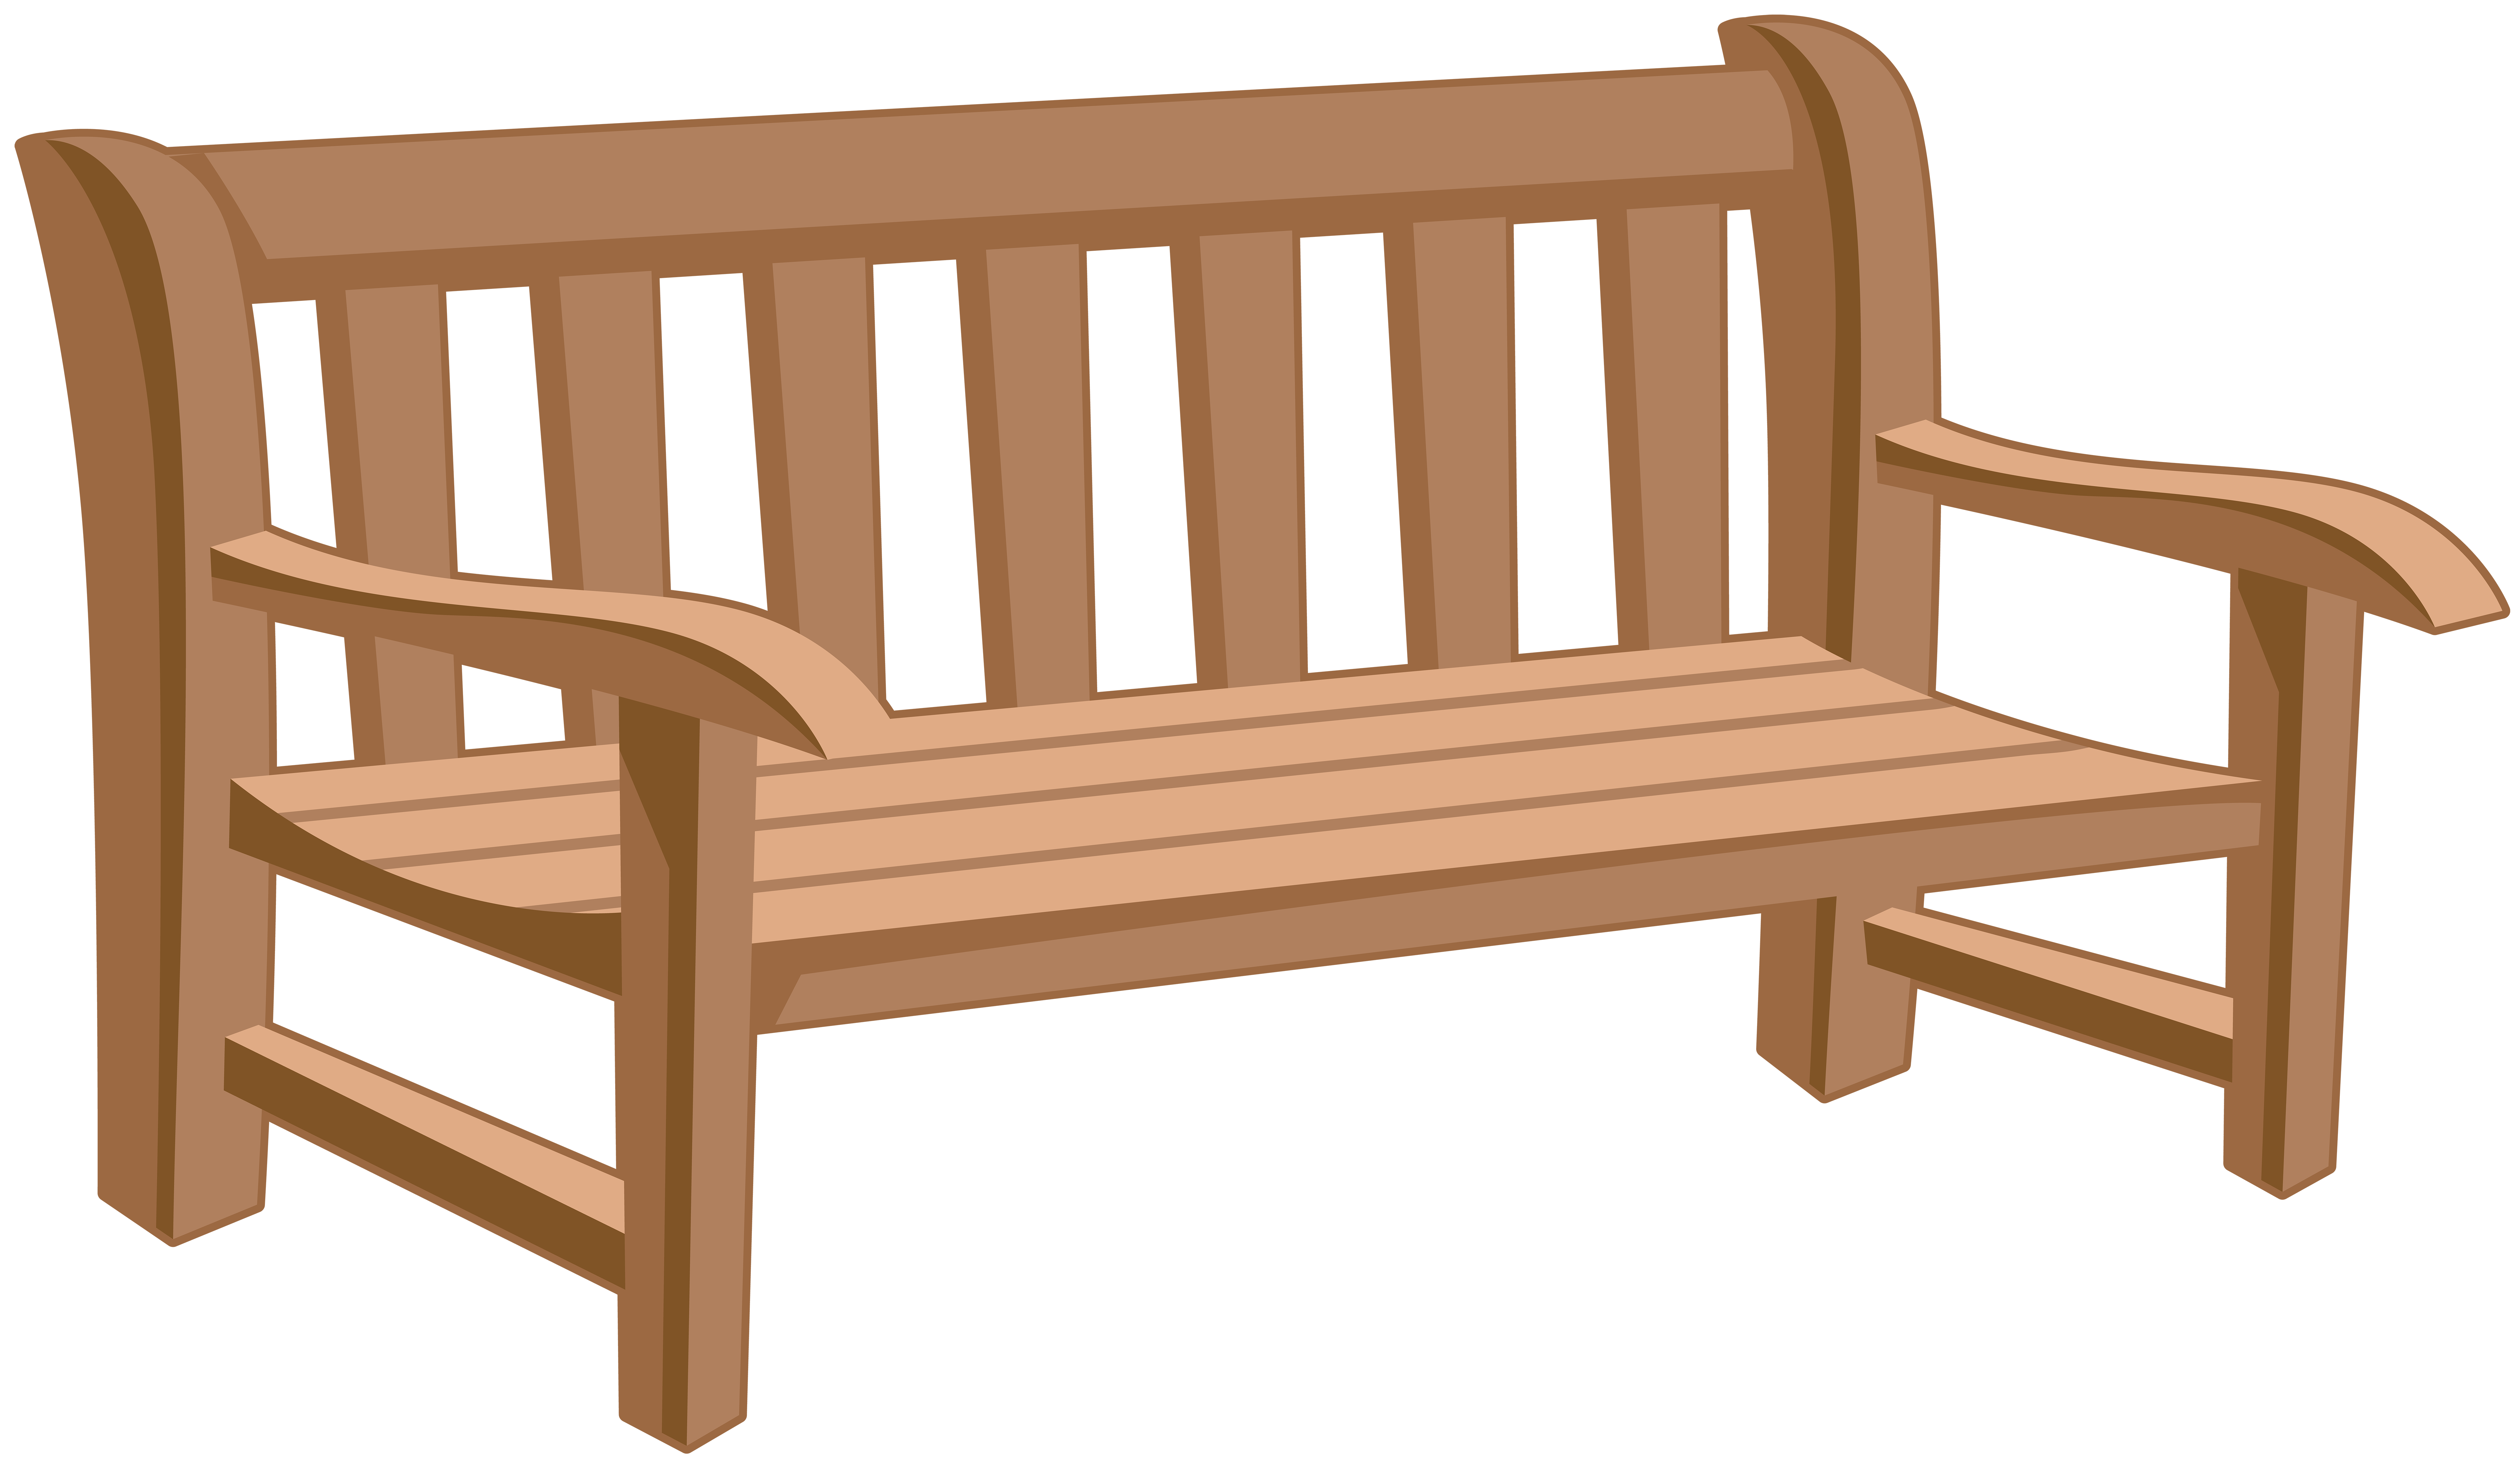 Park bench clipart download svg royalty free download Park Bench PNG Clip Art Image | Gallery Yopriceville - High ... svg royalty free download